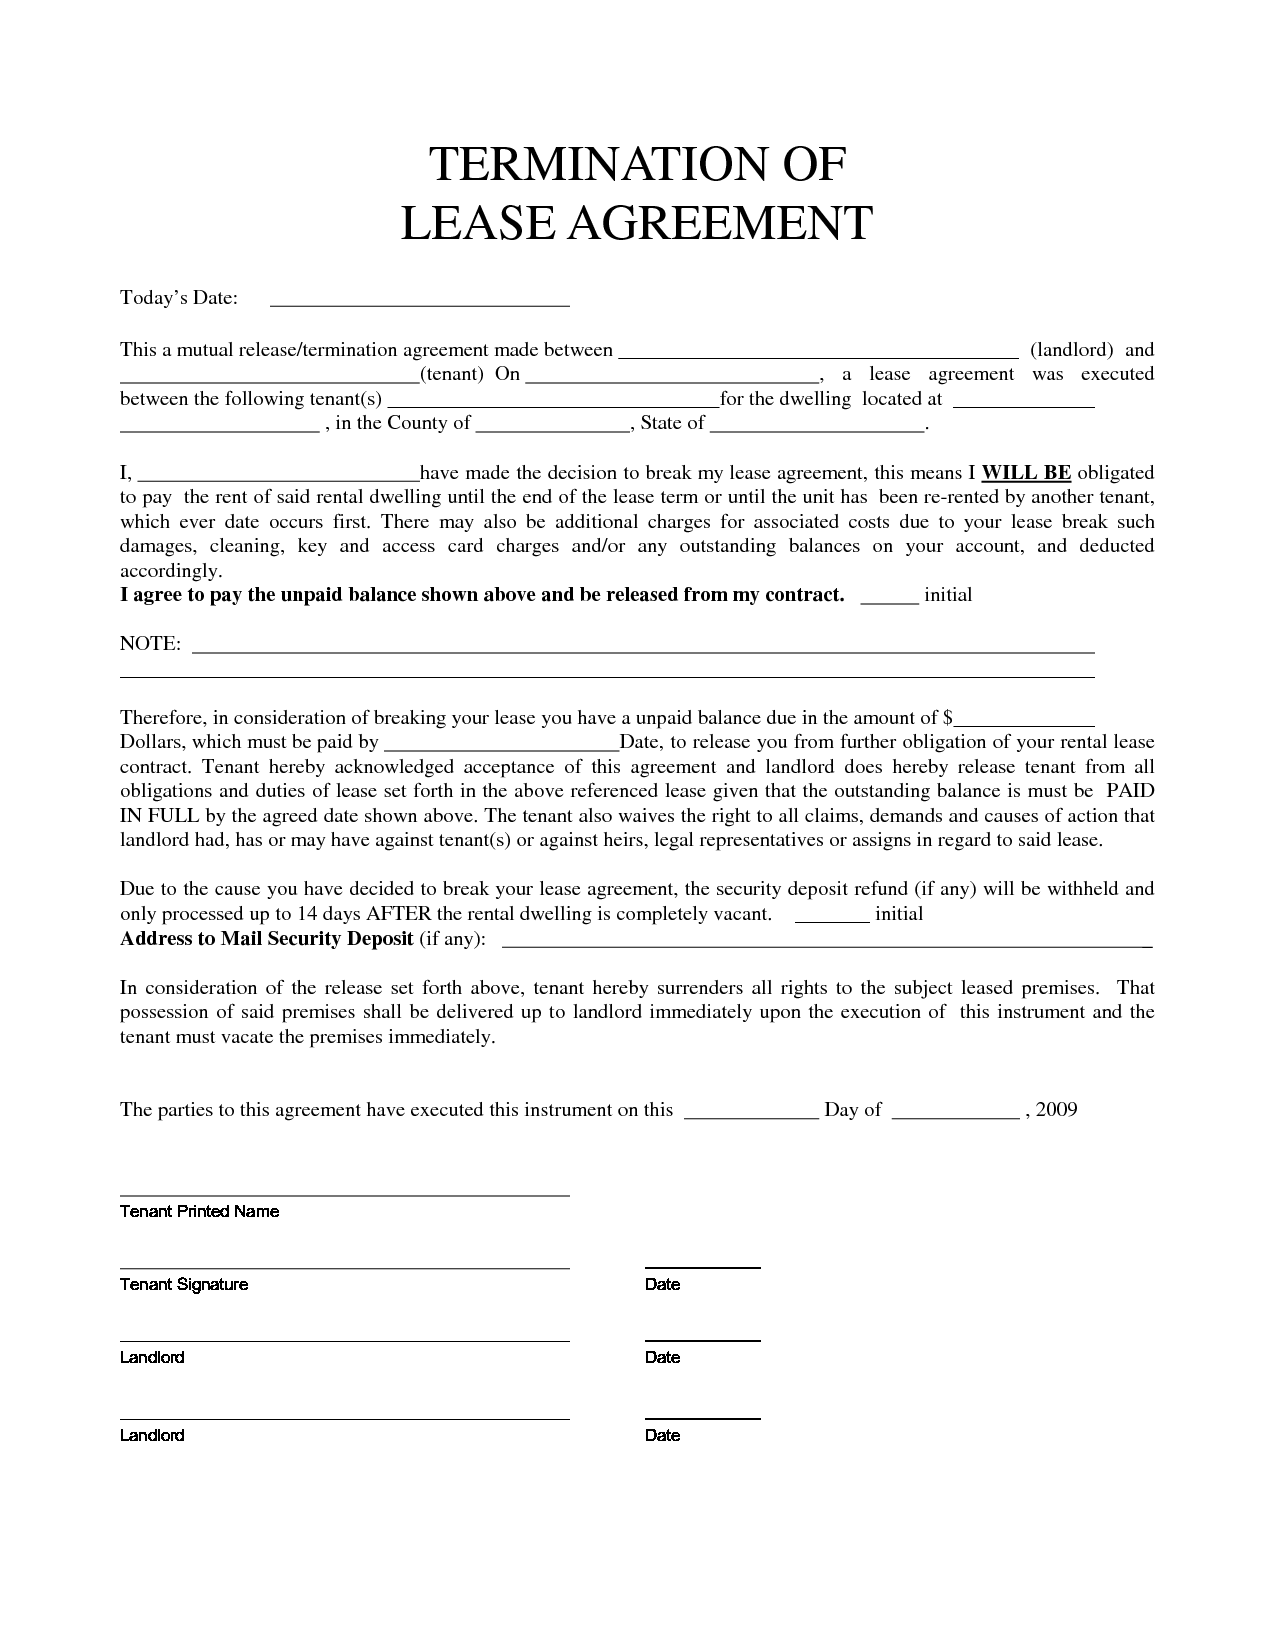 Personal Property Rental Agreement Forms Property Rentals